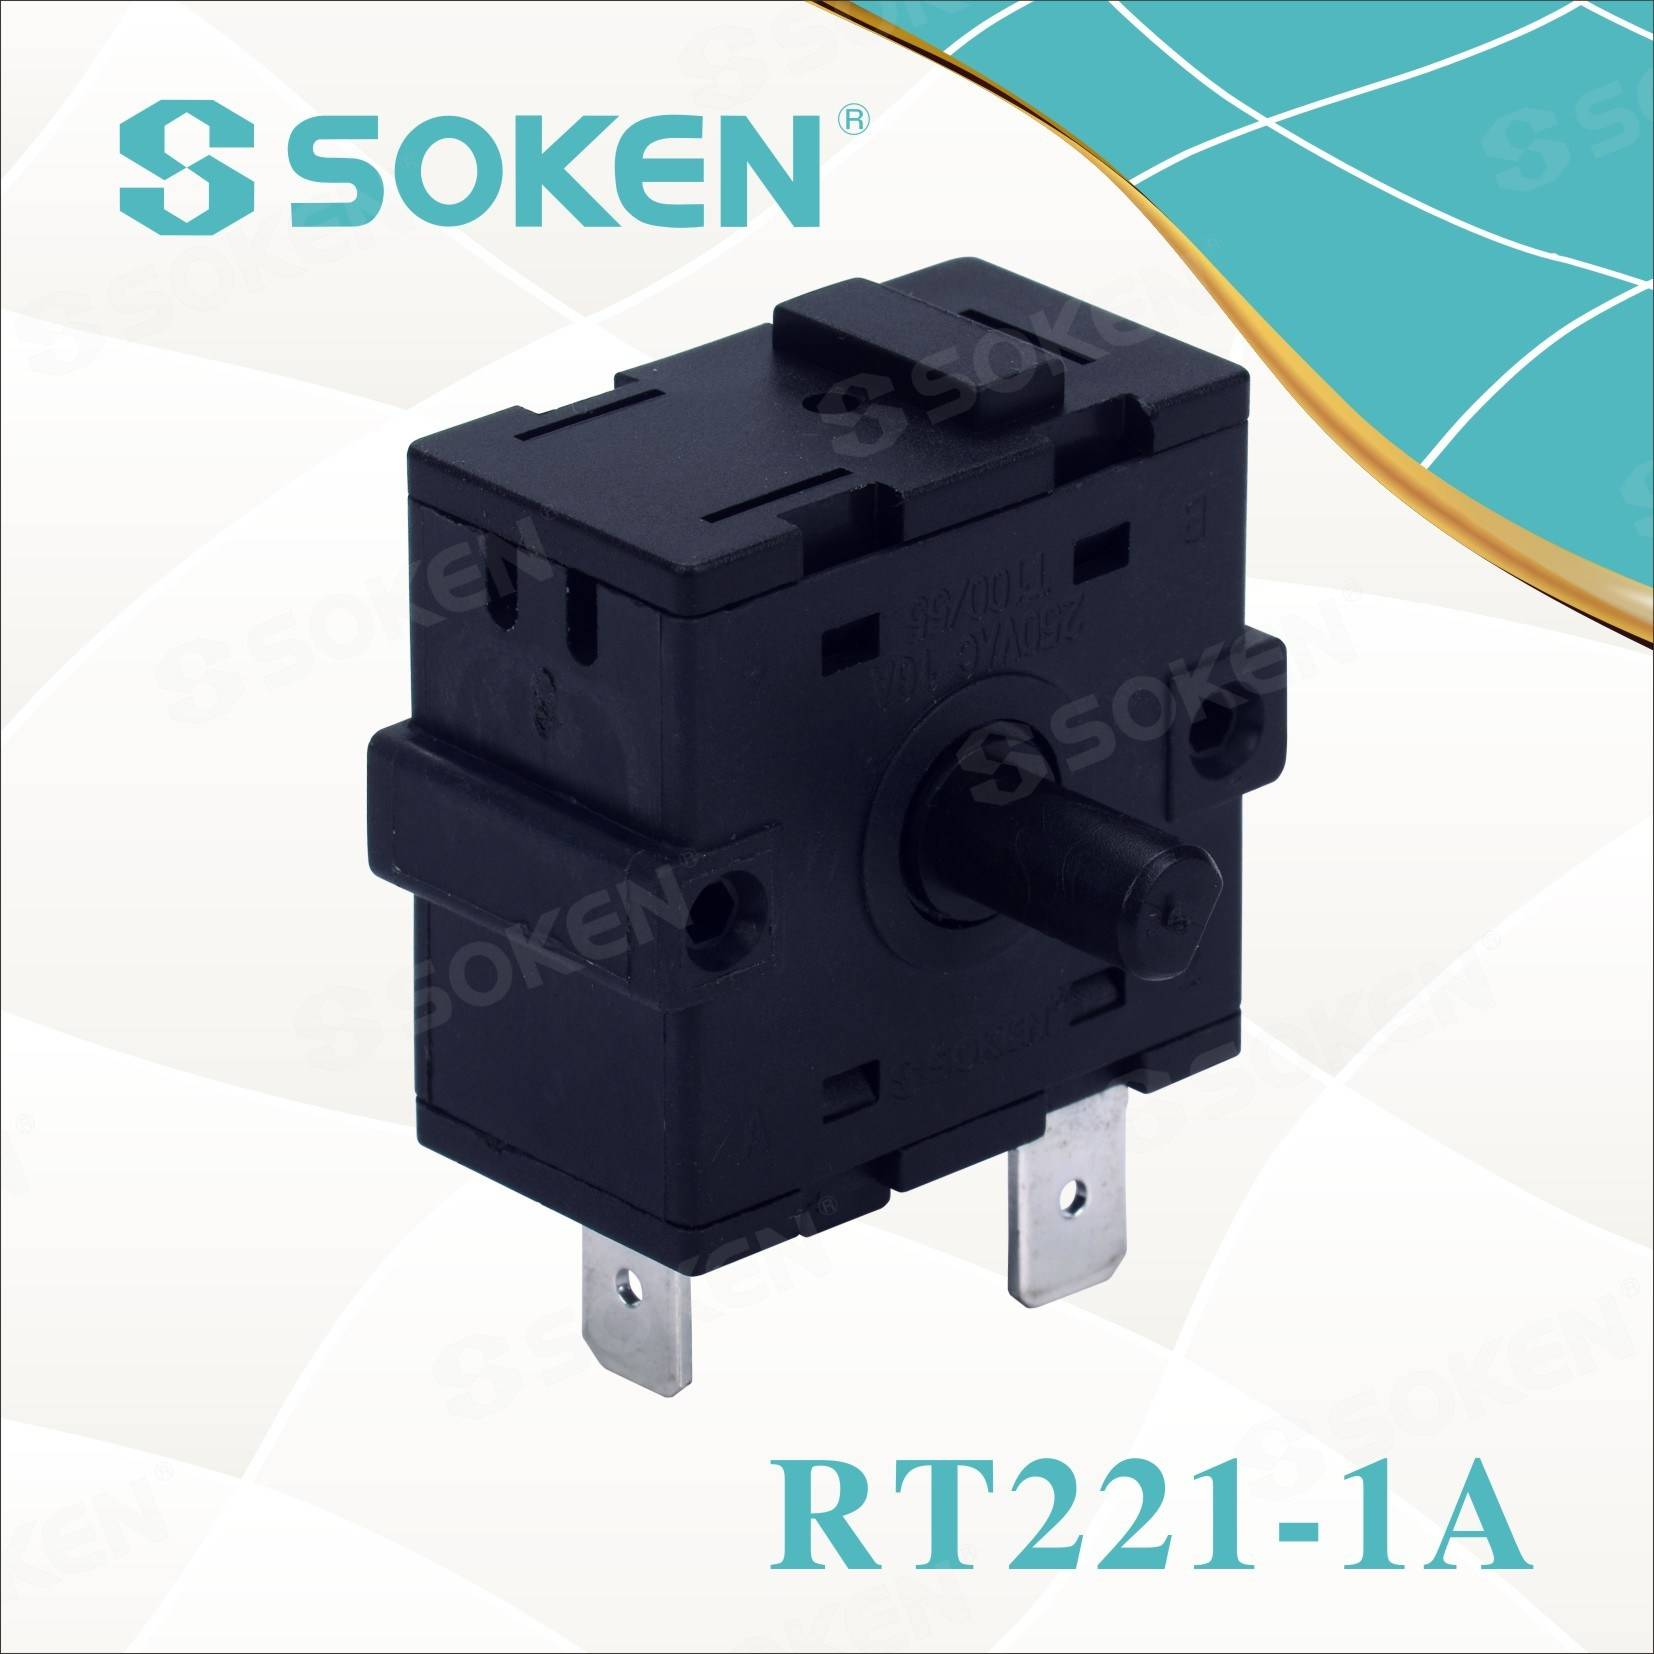 Soken Rotary Switch